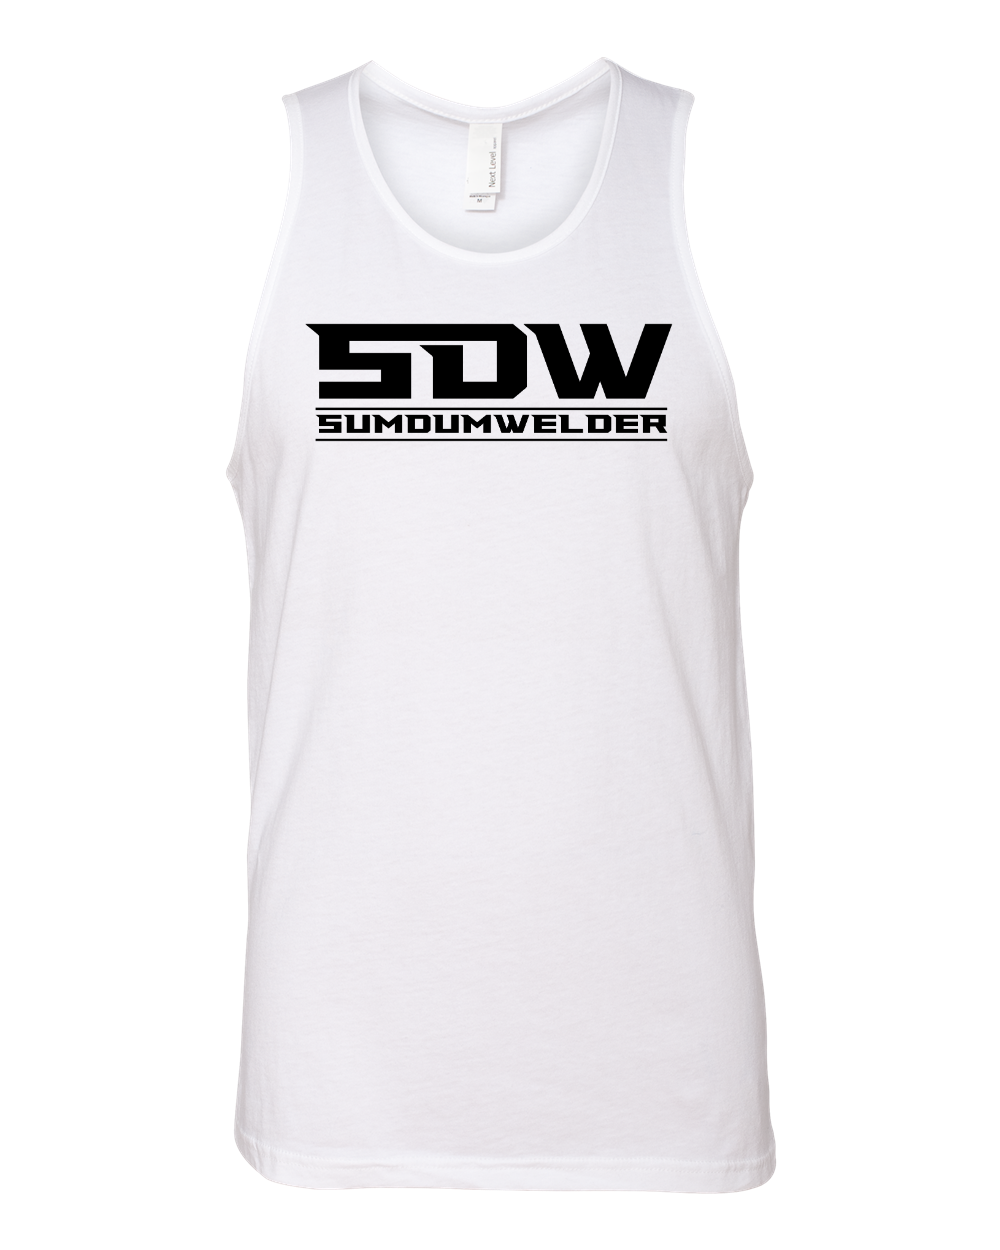 SDW Full Front - Black logo